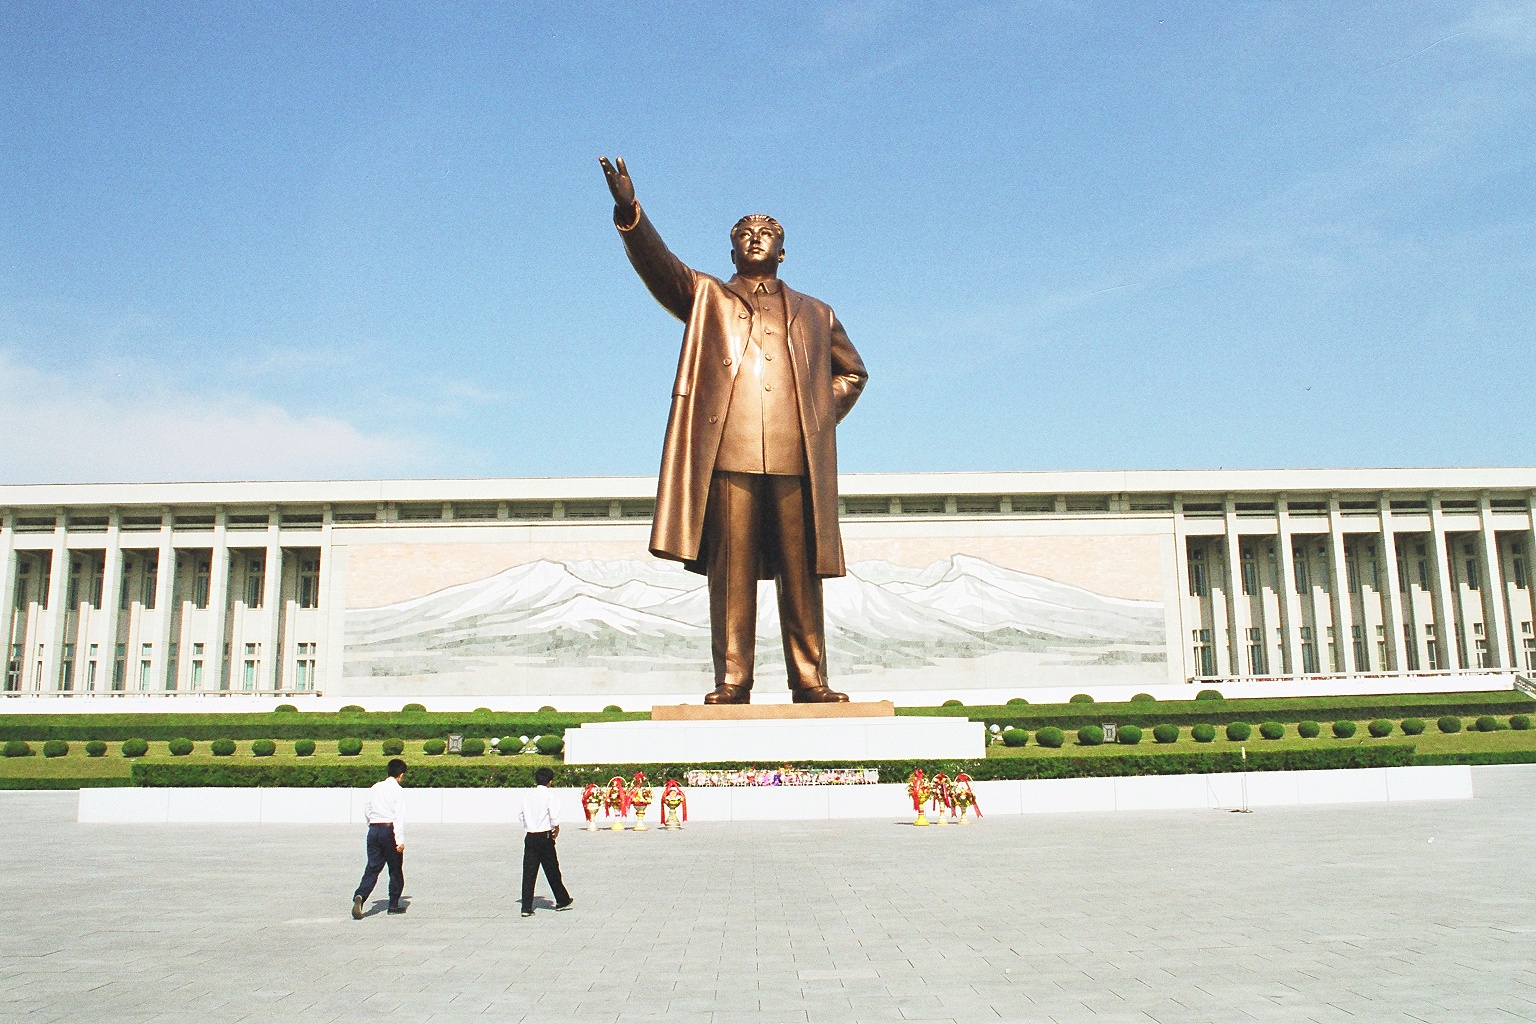 Kim Il-sung - all visitors must bow to this statue.